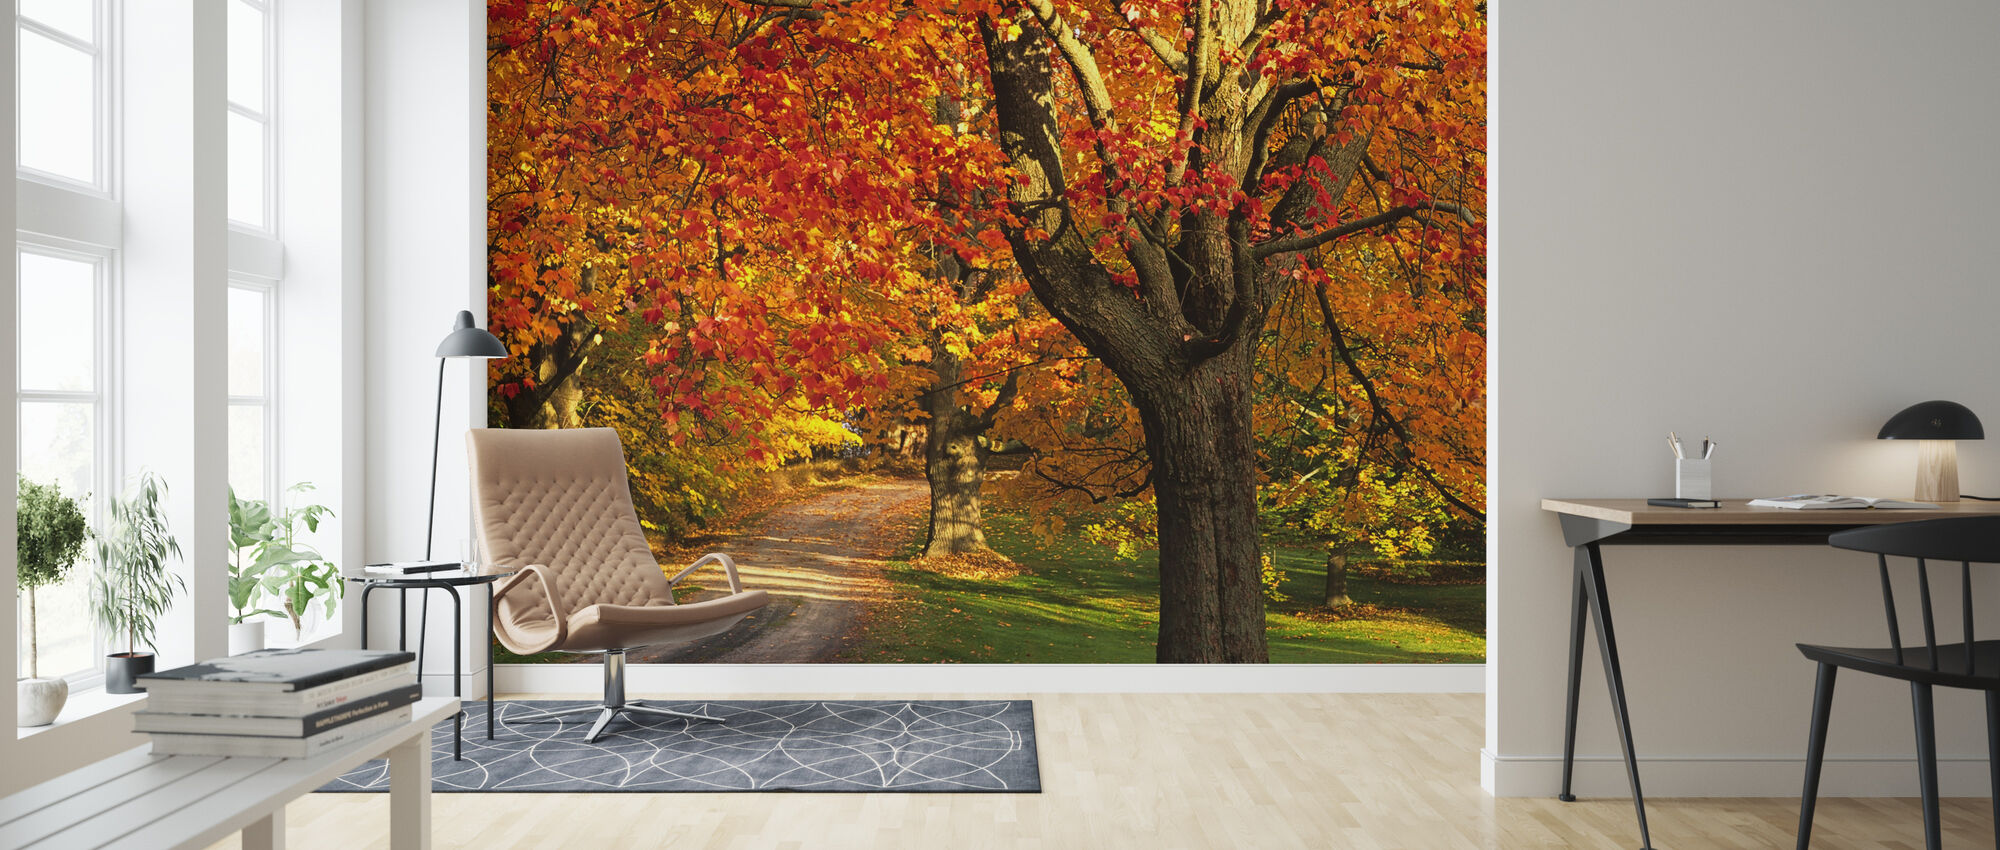 Golden Maple Tree - Wallpaper - Living Room